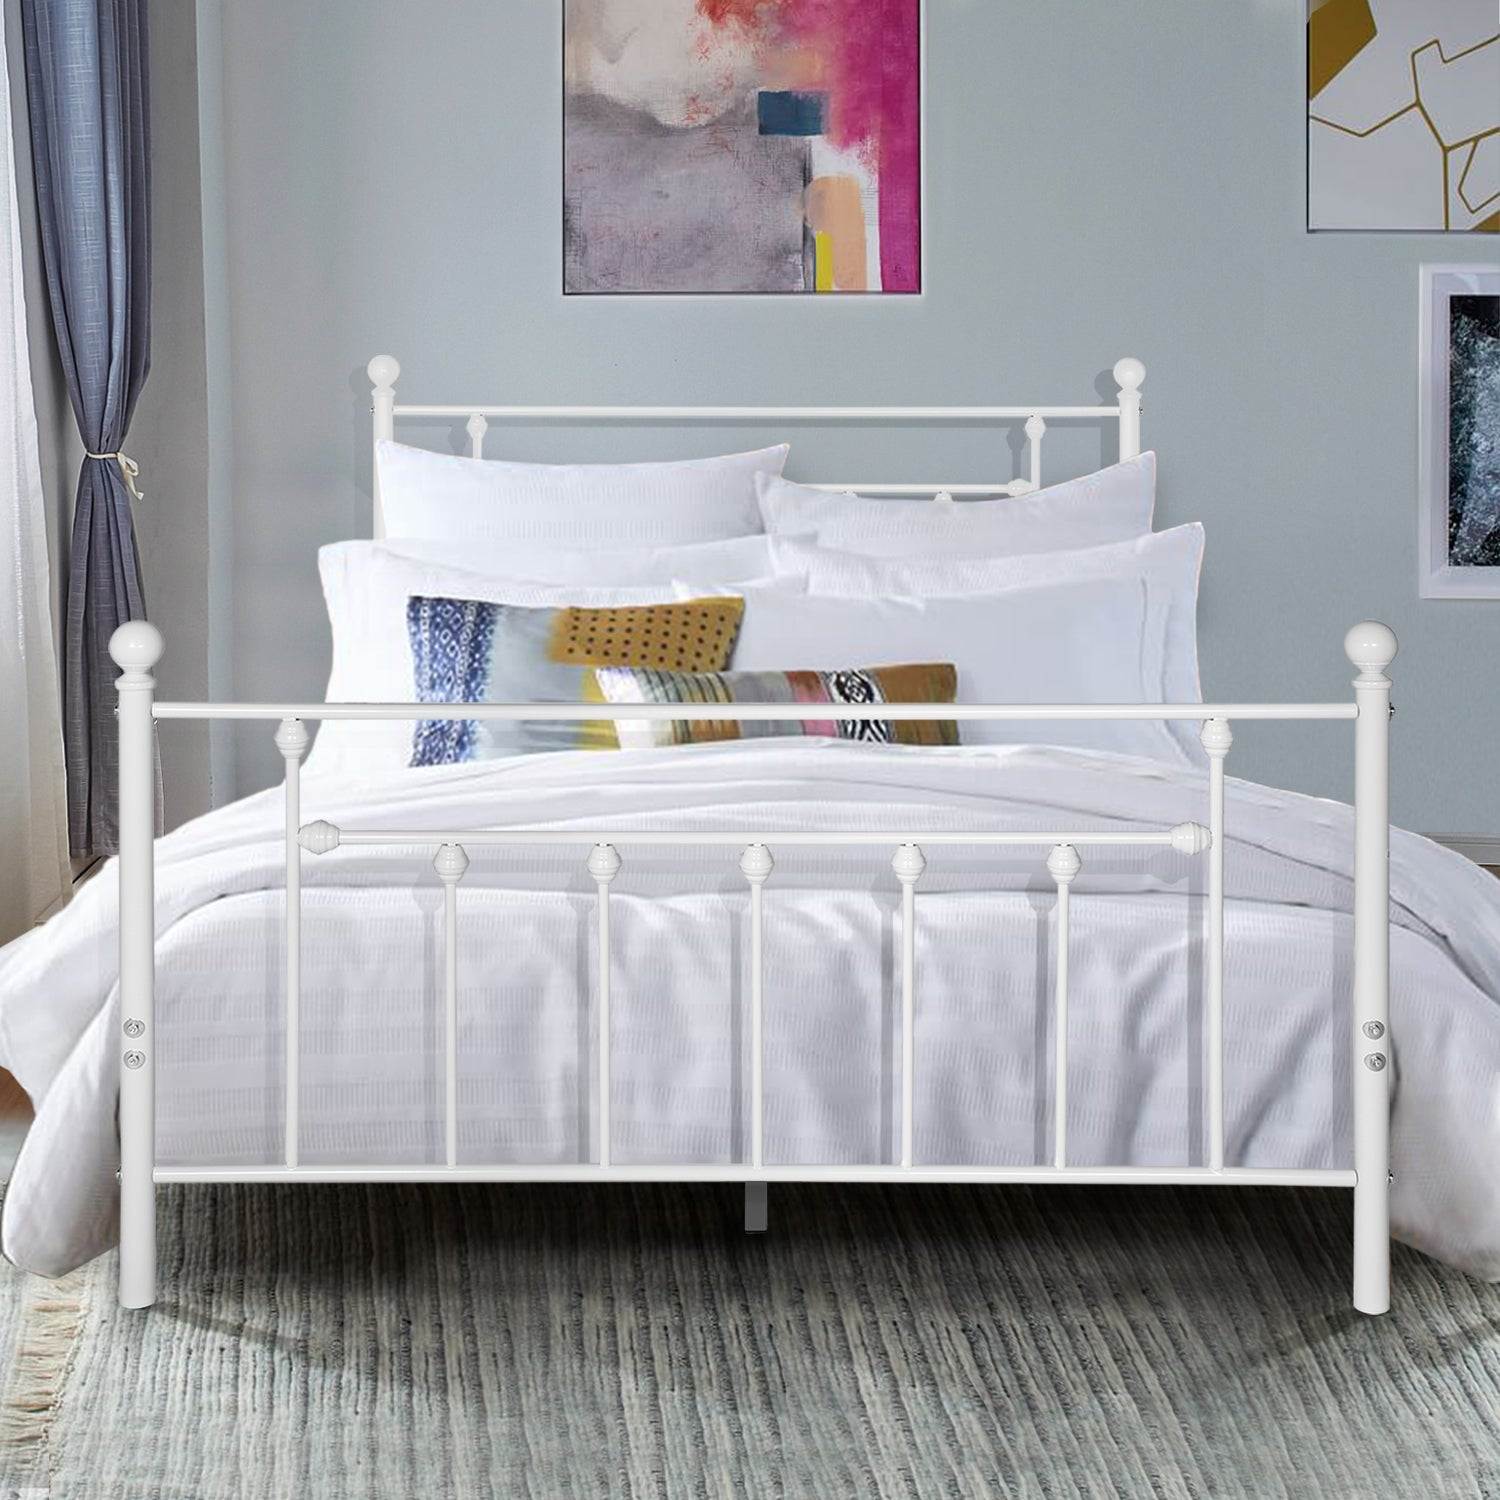 West Antique Industrial Lines White Iron Metal Bed By Vecelo Twin Full Queen Size 3 Opotion Overstock 29867994